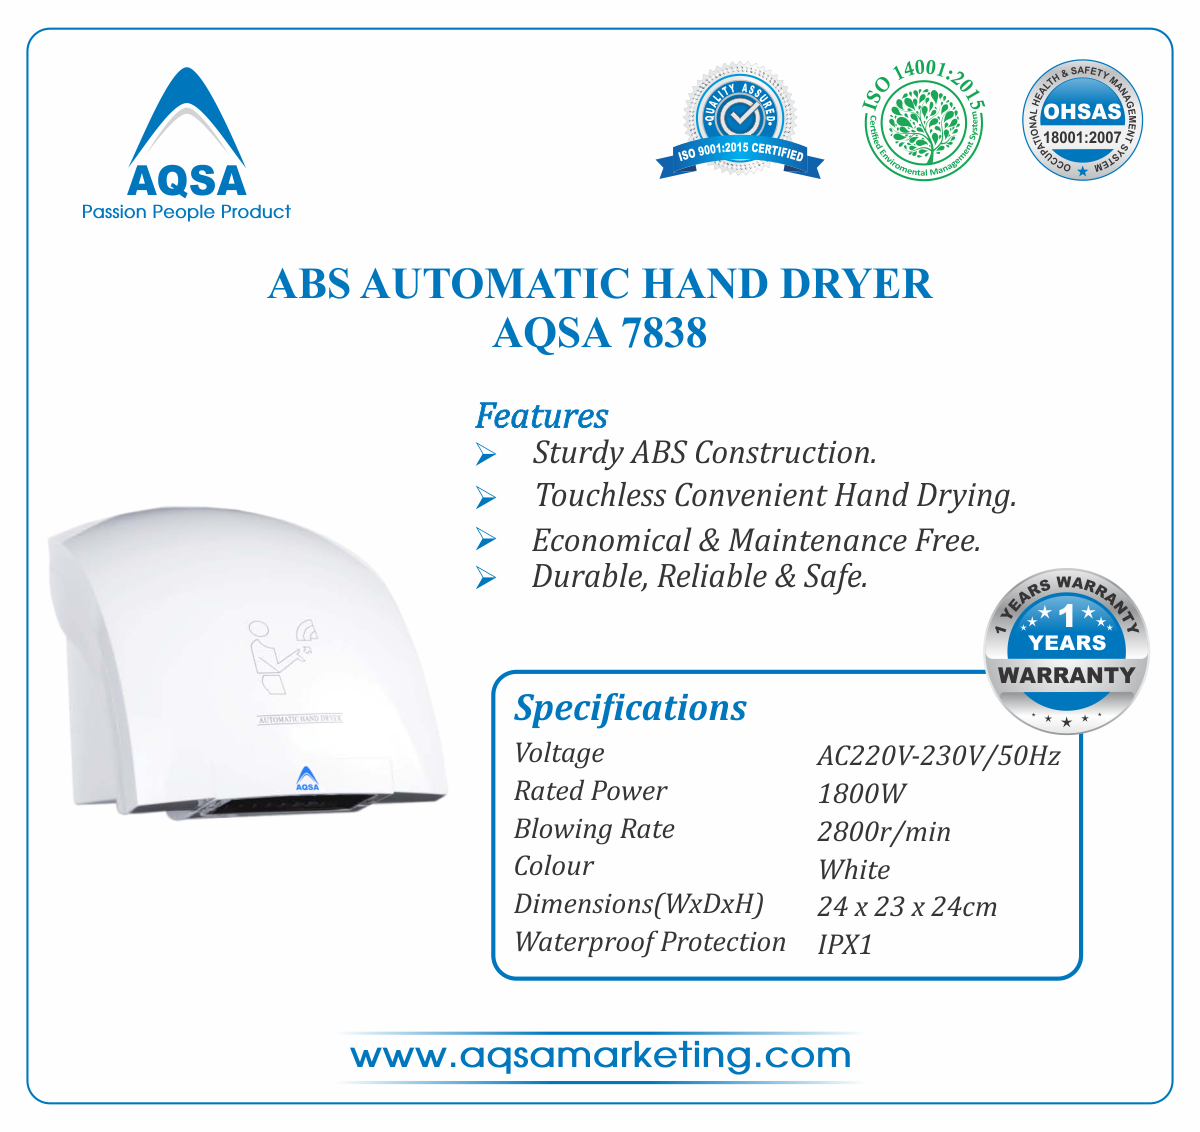 ABS Automatic Hand Dryer AQSA-7838 image